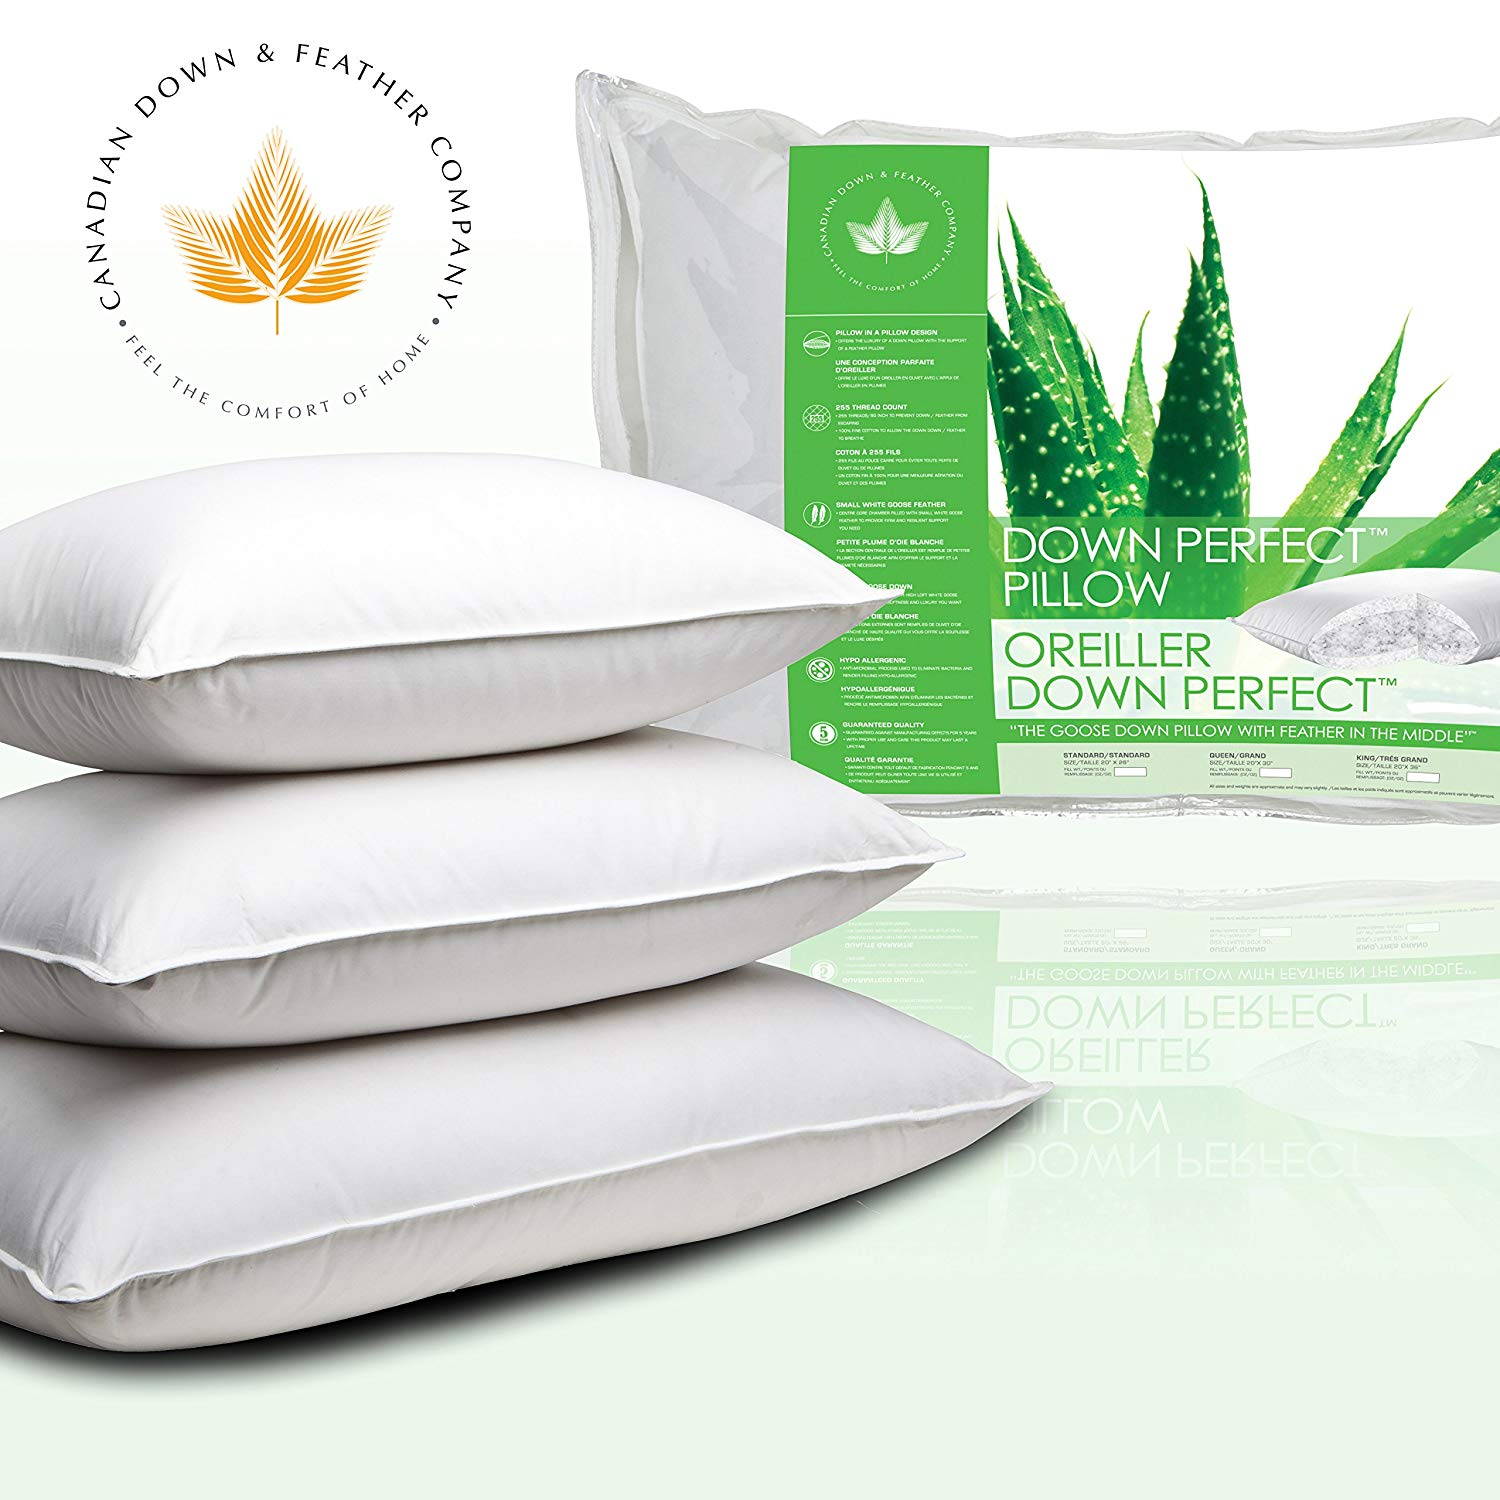 Canadian Down & Feather Company Feather Pillows